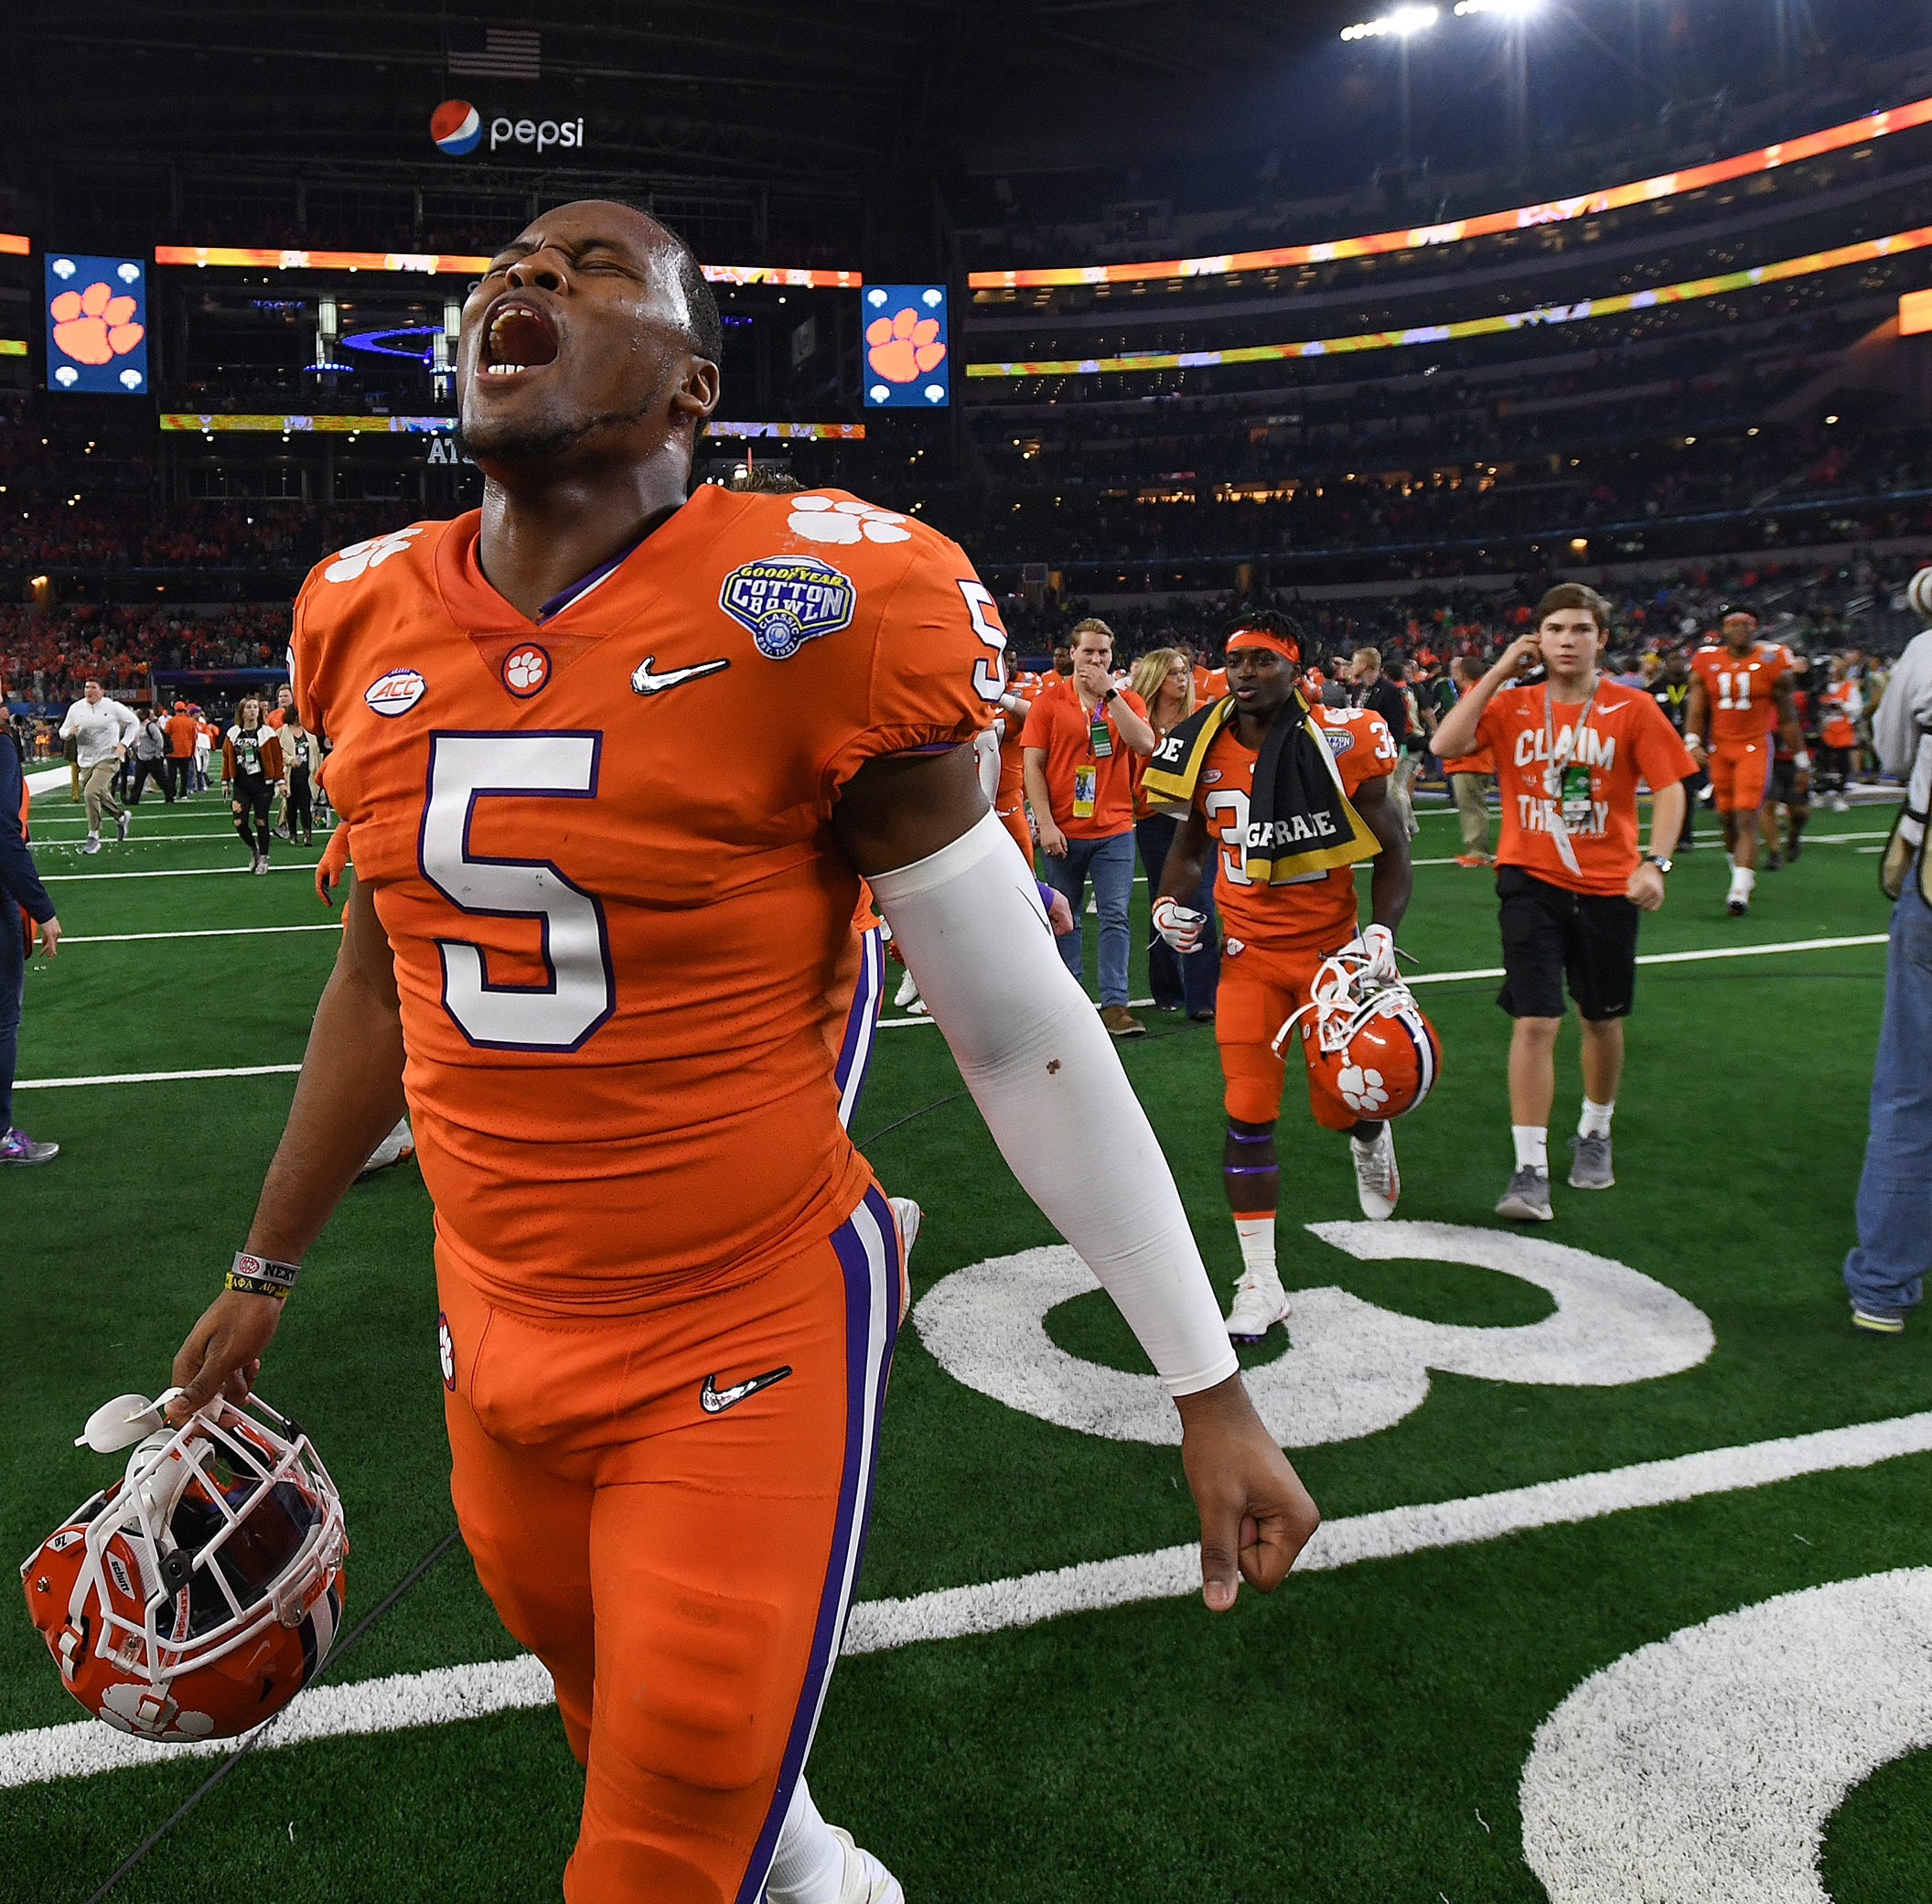 Clemson Football: Shaq Smith could be the next Christian Wilkins for the Tigers